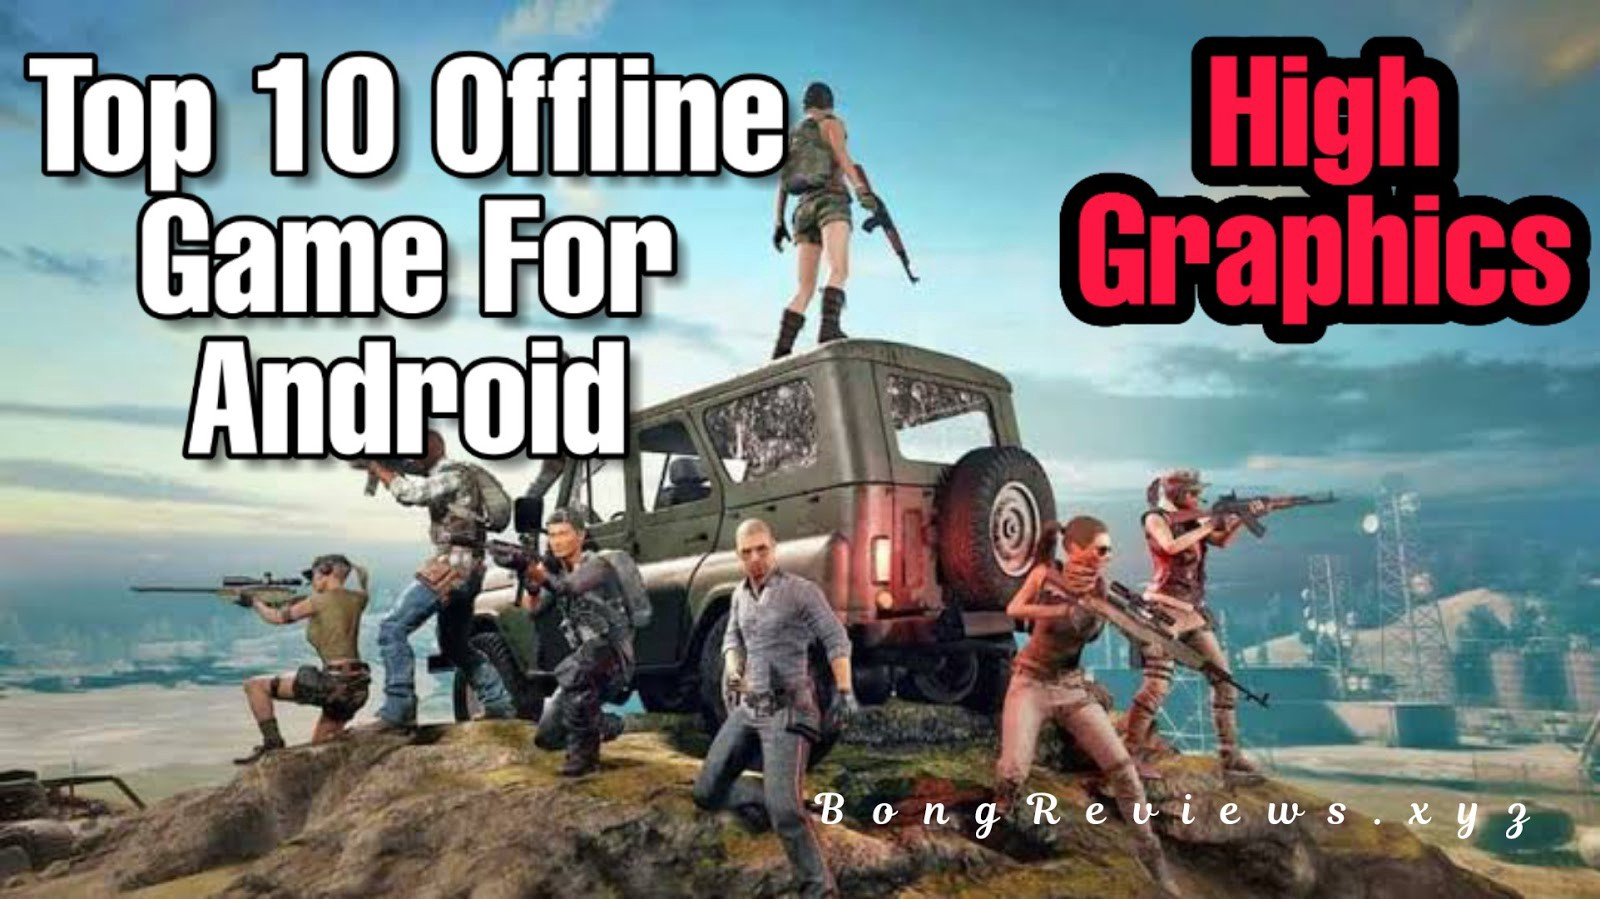 Top 10 Offline High Graphics Hidden Android Games 2020 By Bongreviews Medium